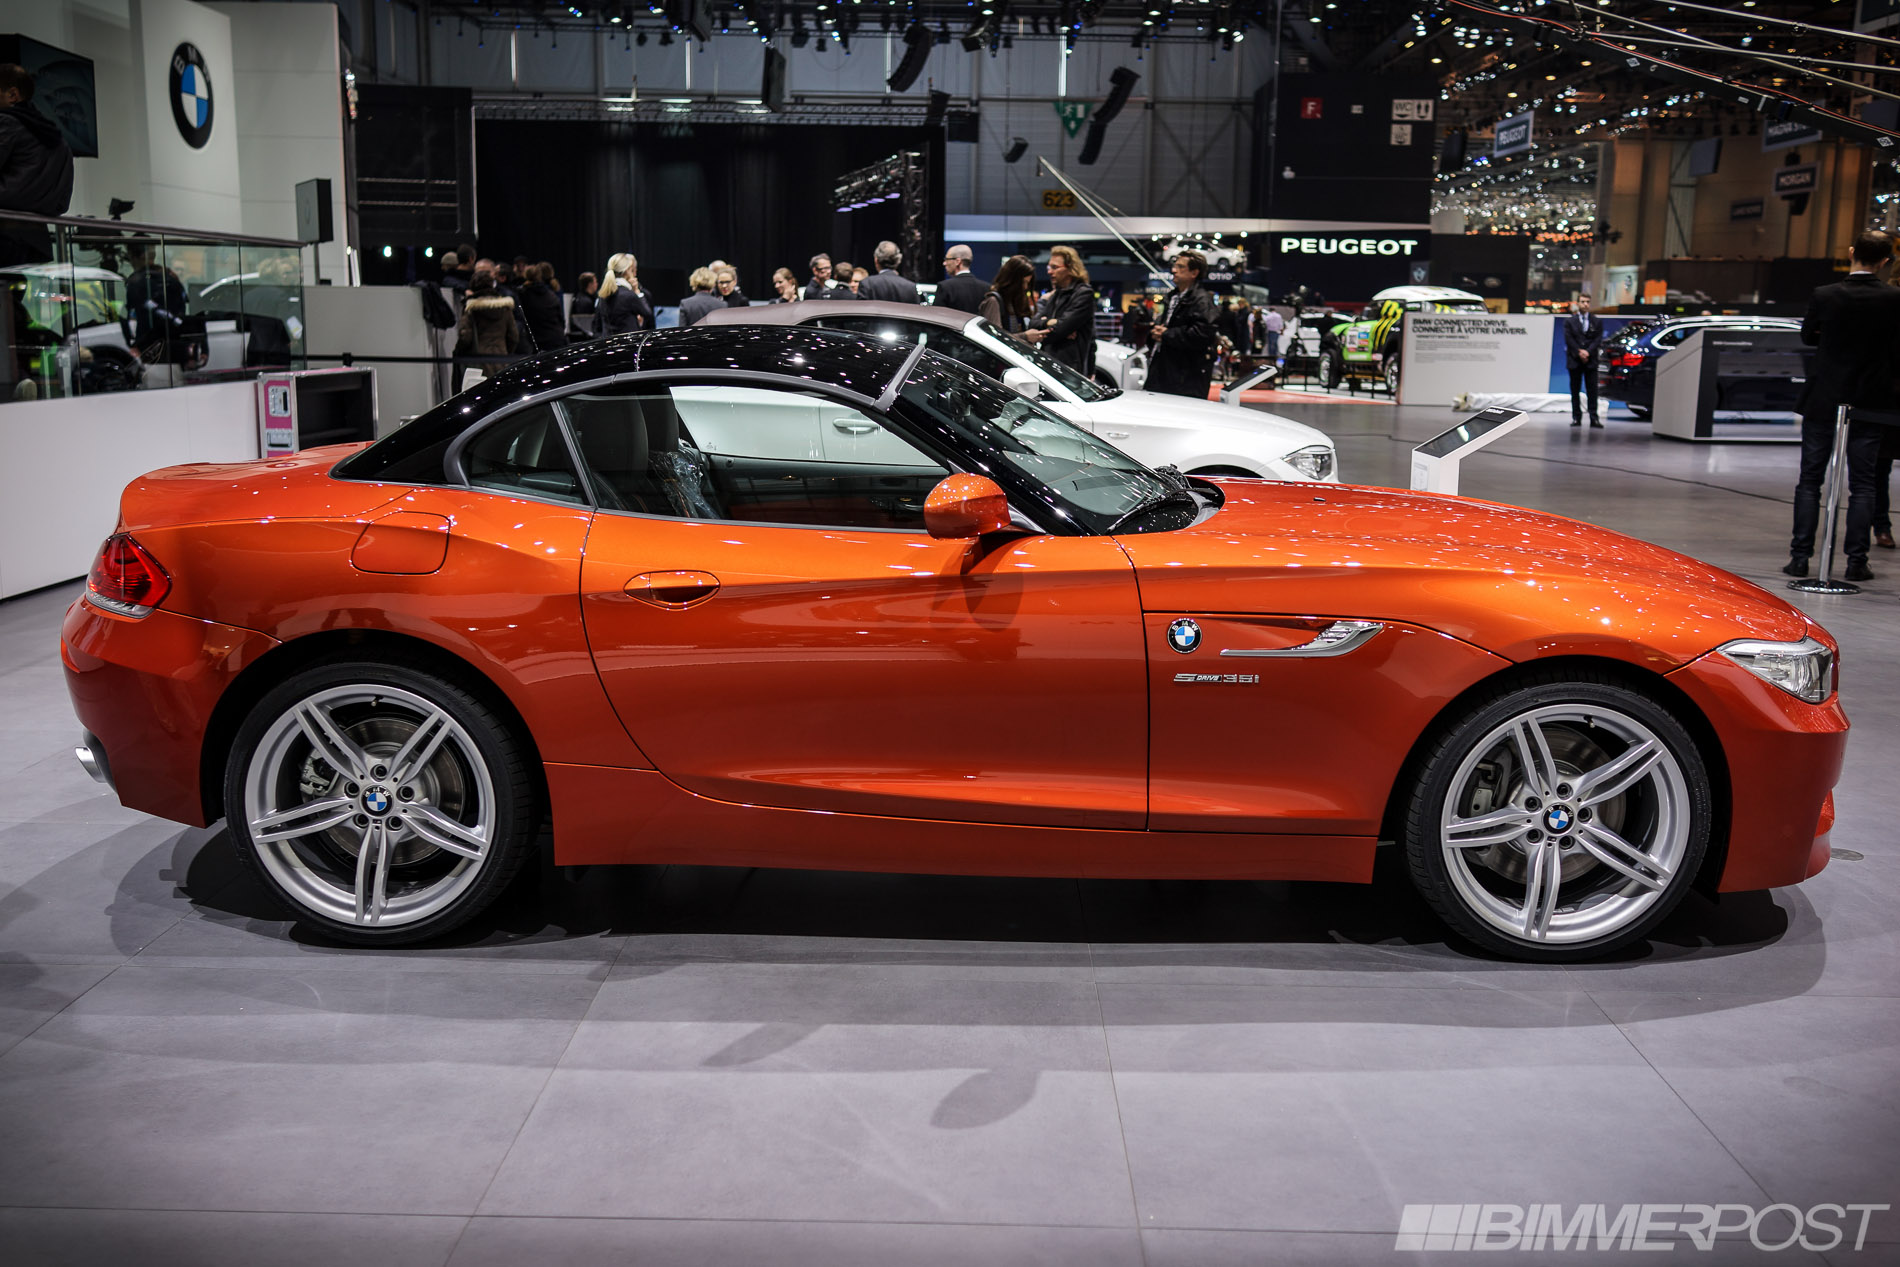 Geneva 2013 Bmw Z4 Lci In Valencia Orange And Hyper